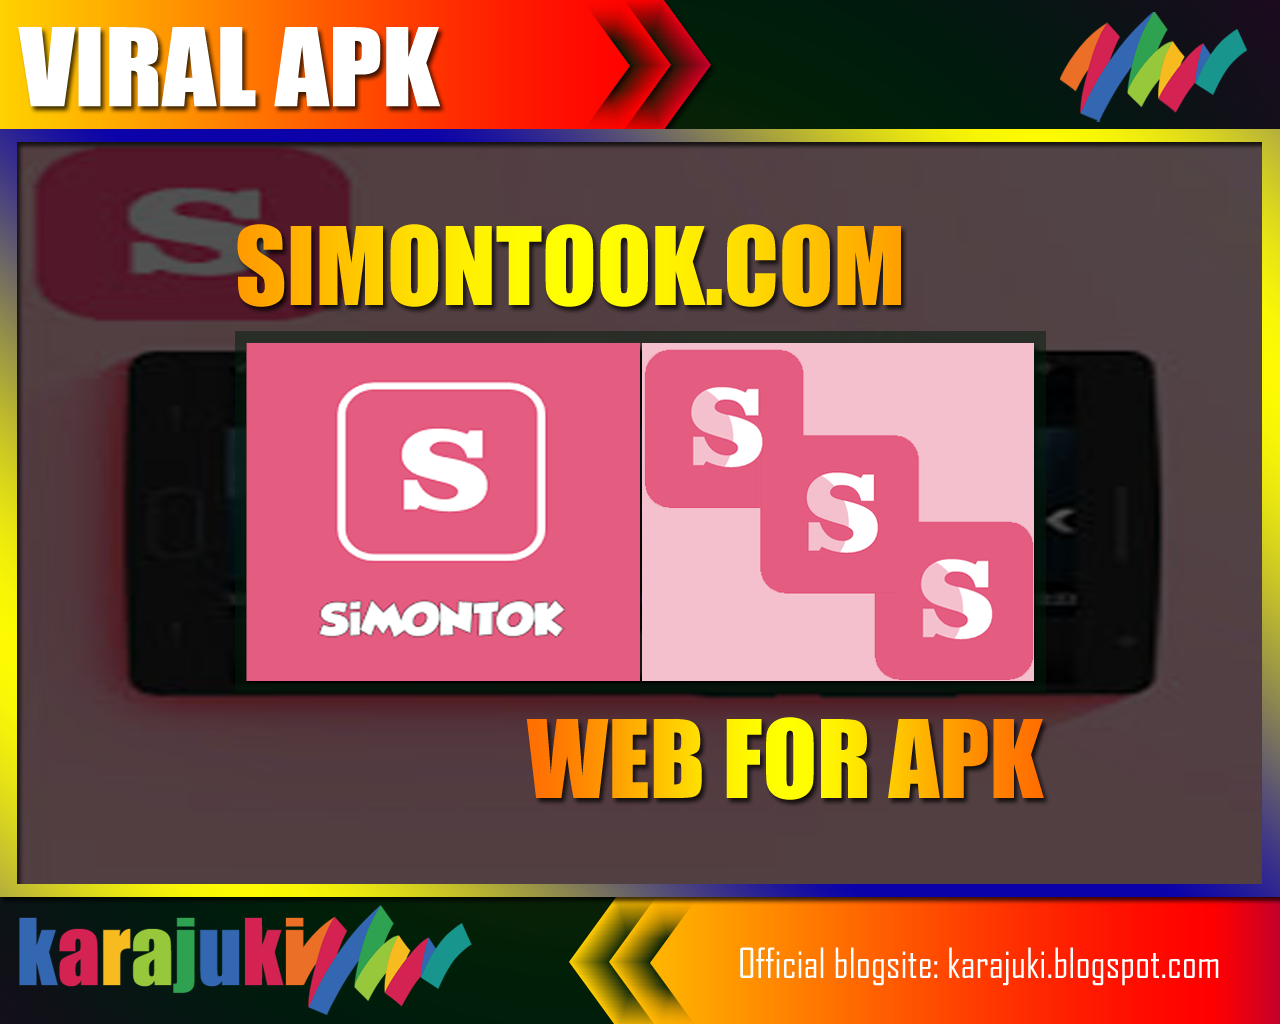 We are searching for simontok apk on